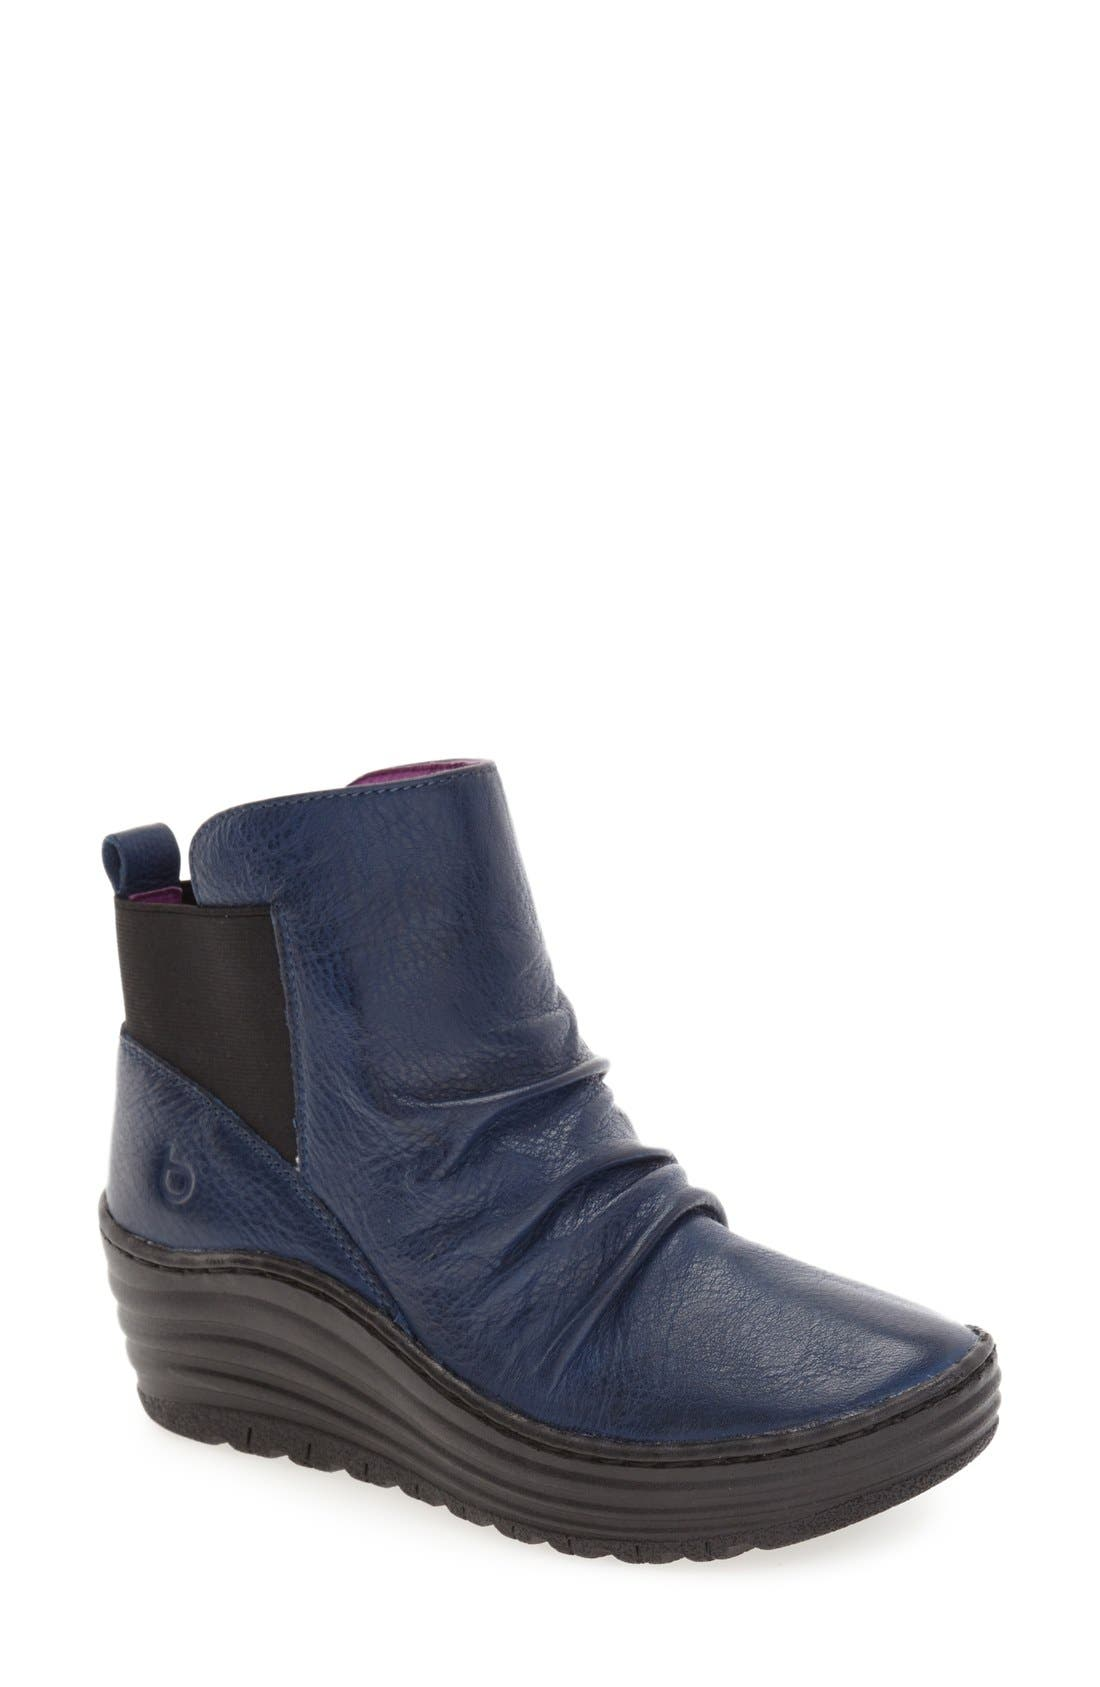 Main Image - bionica 'Gilford' Wedge Bootie (Women)